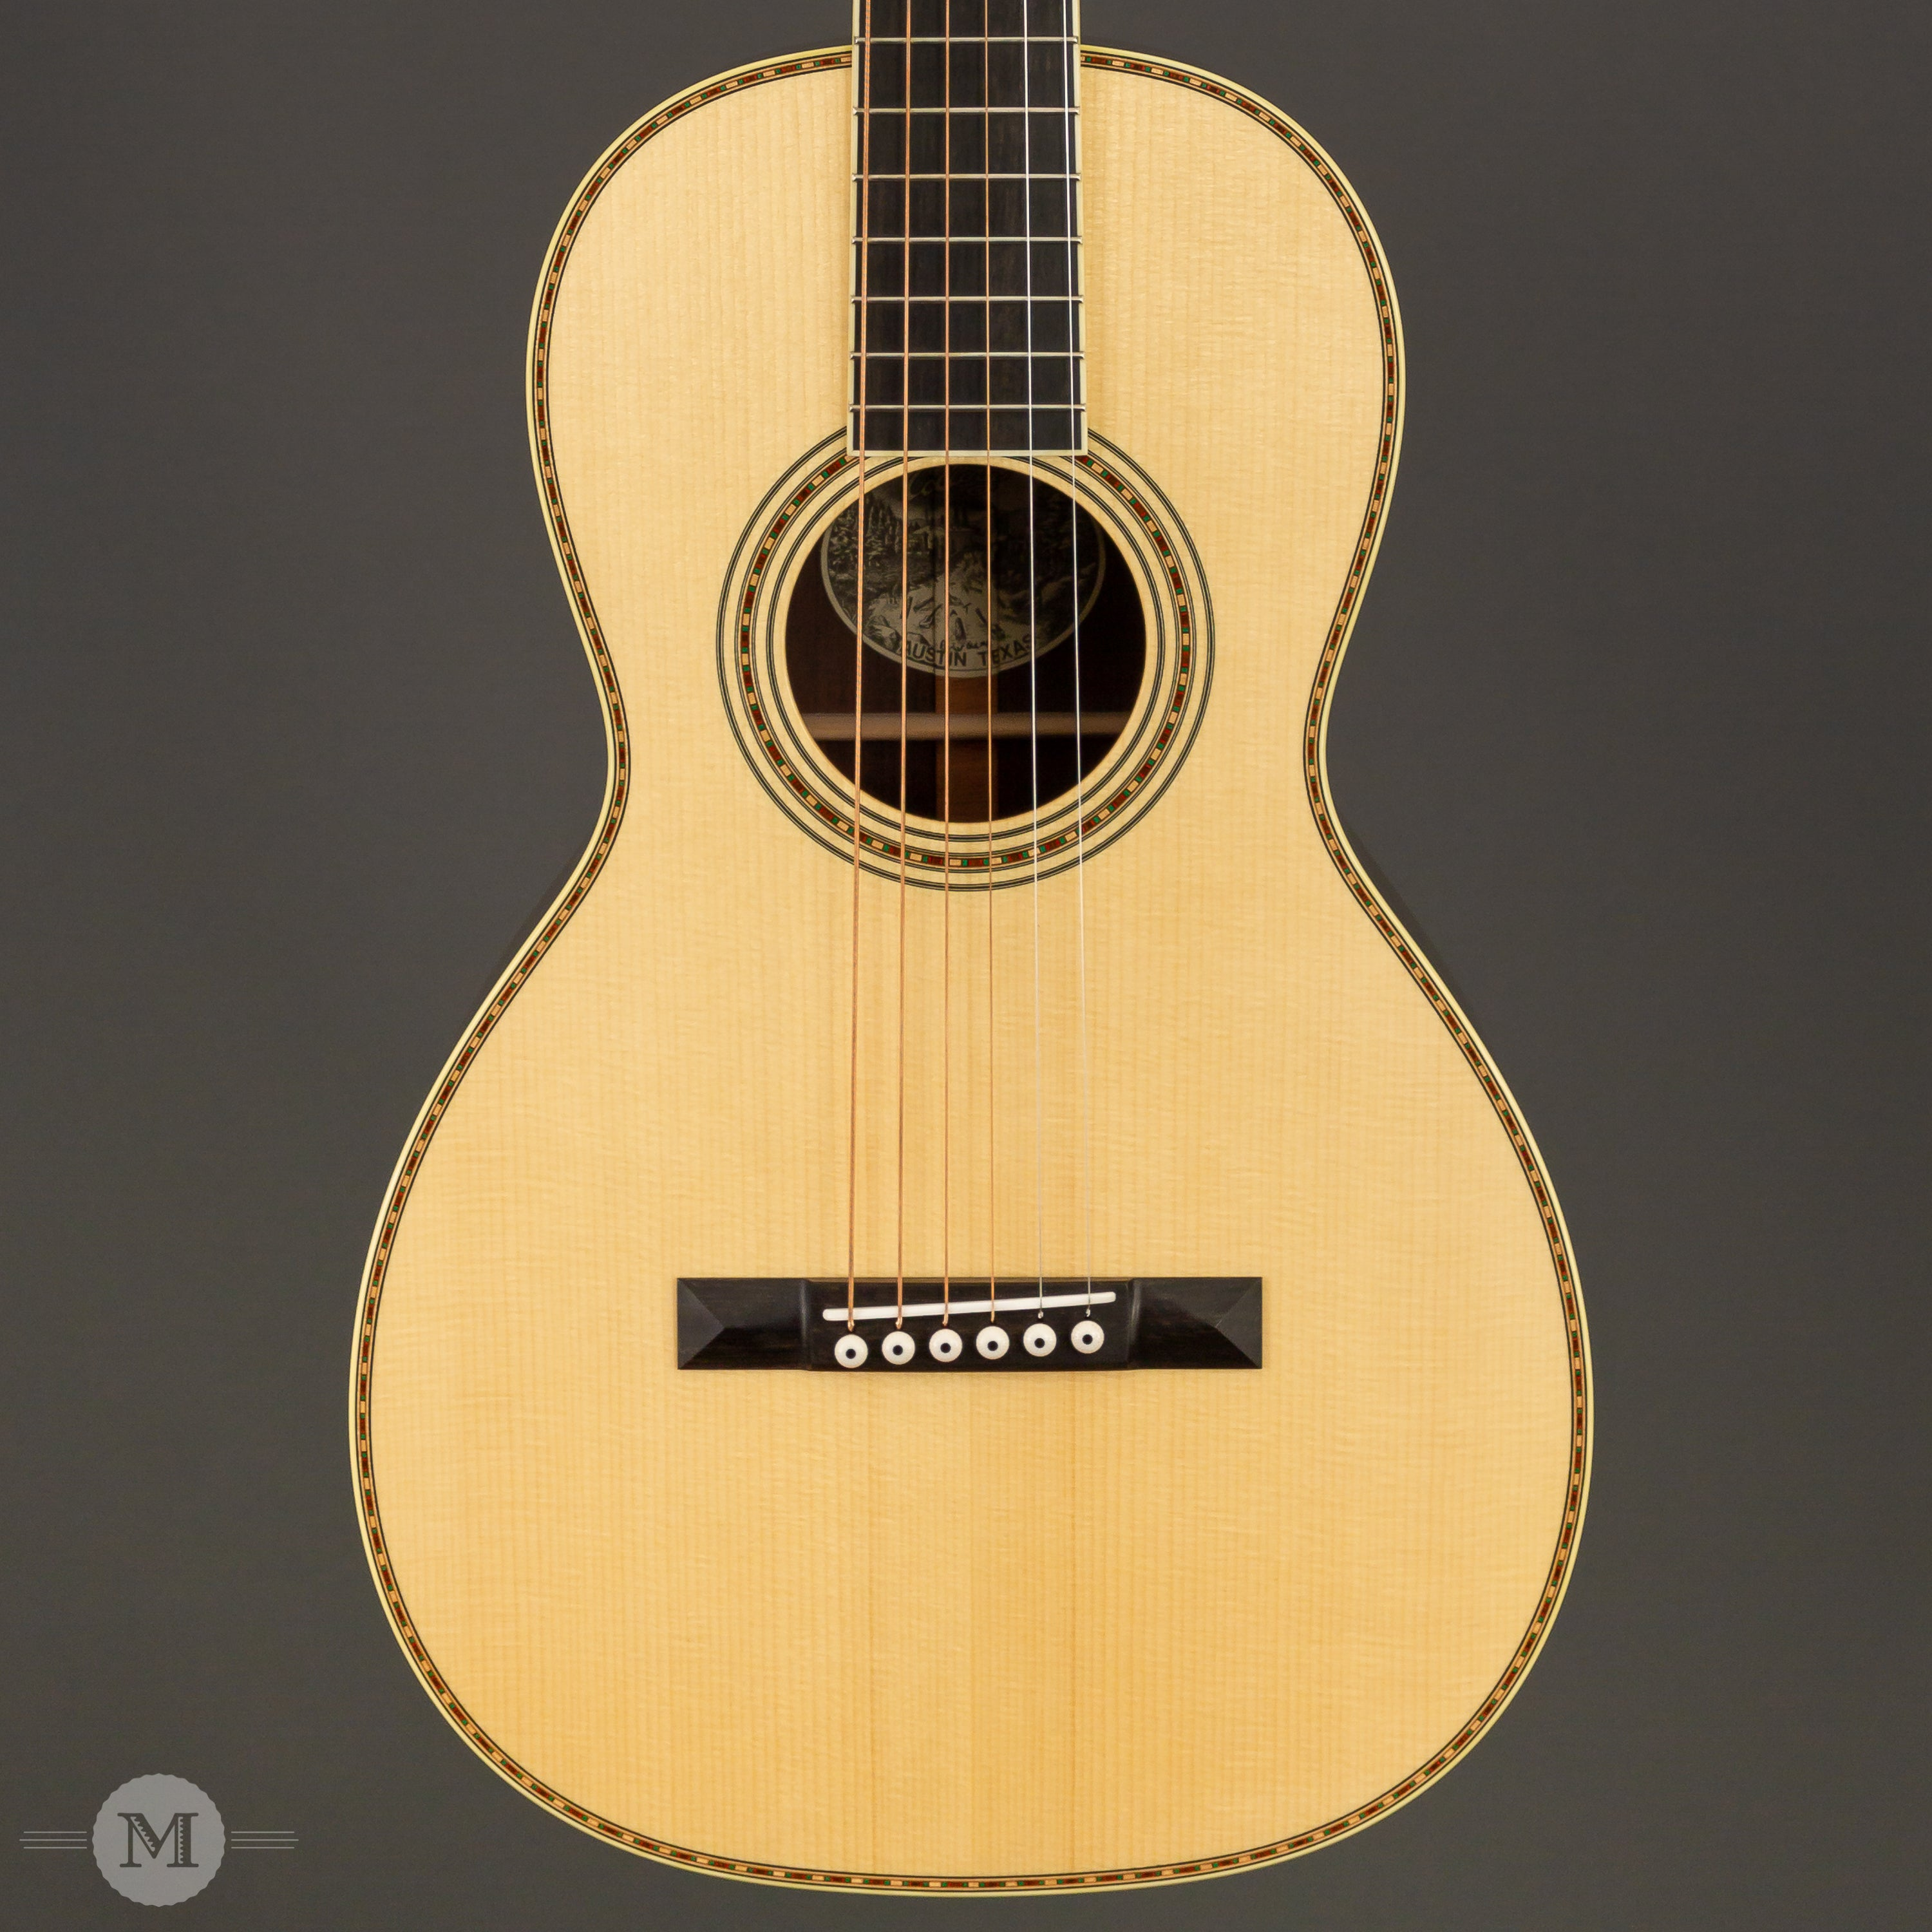 Collings Guitars - Parlor Deluxe 2HA MR Traditional T Series - Madagascar Rosewood